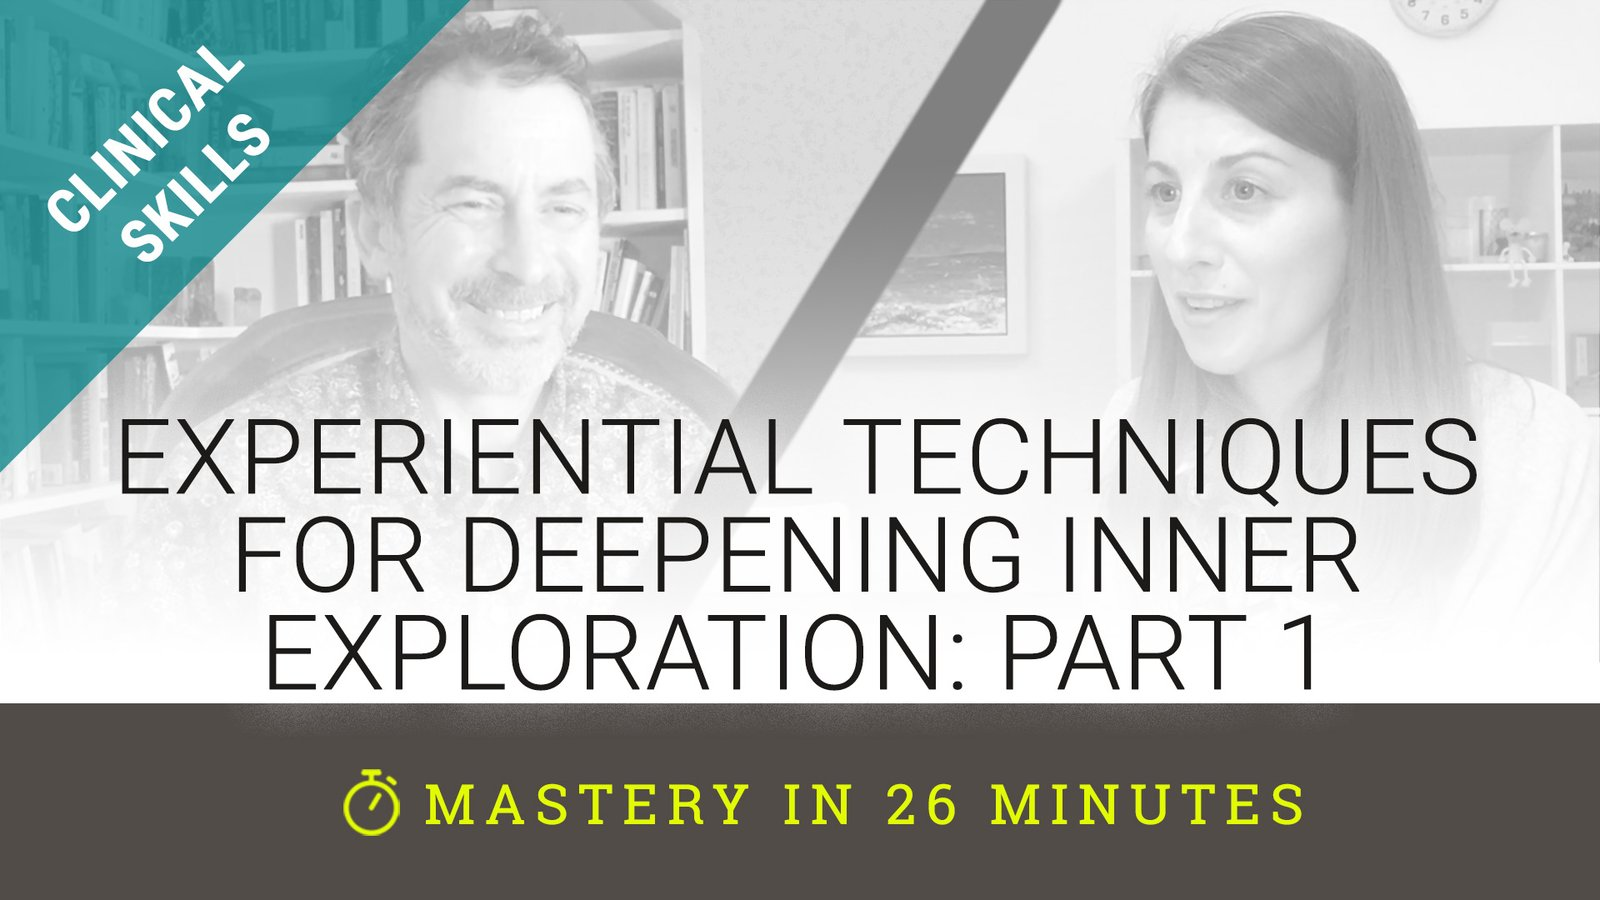 Experiential Techniques for Deepening Inner Exploration: Part 1